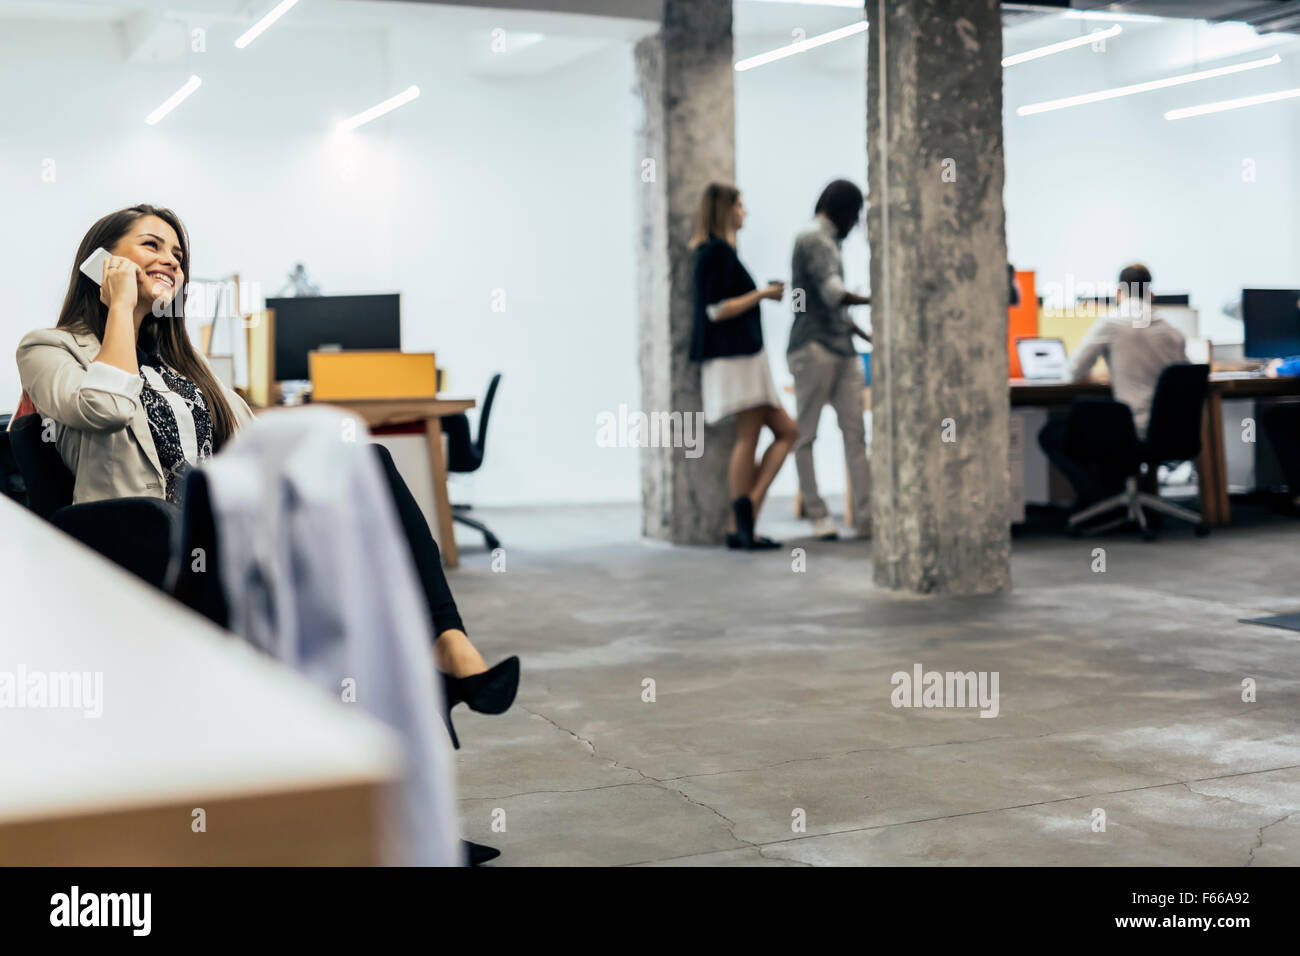 Business Woman using phone in an office Photo Stock